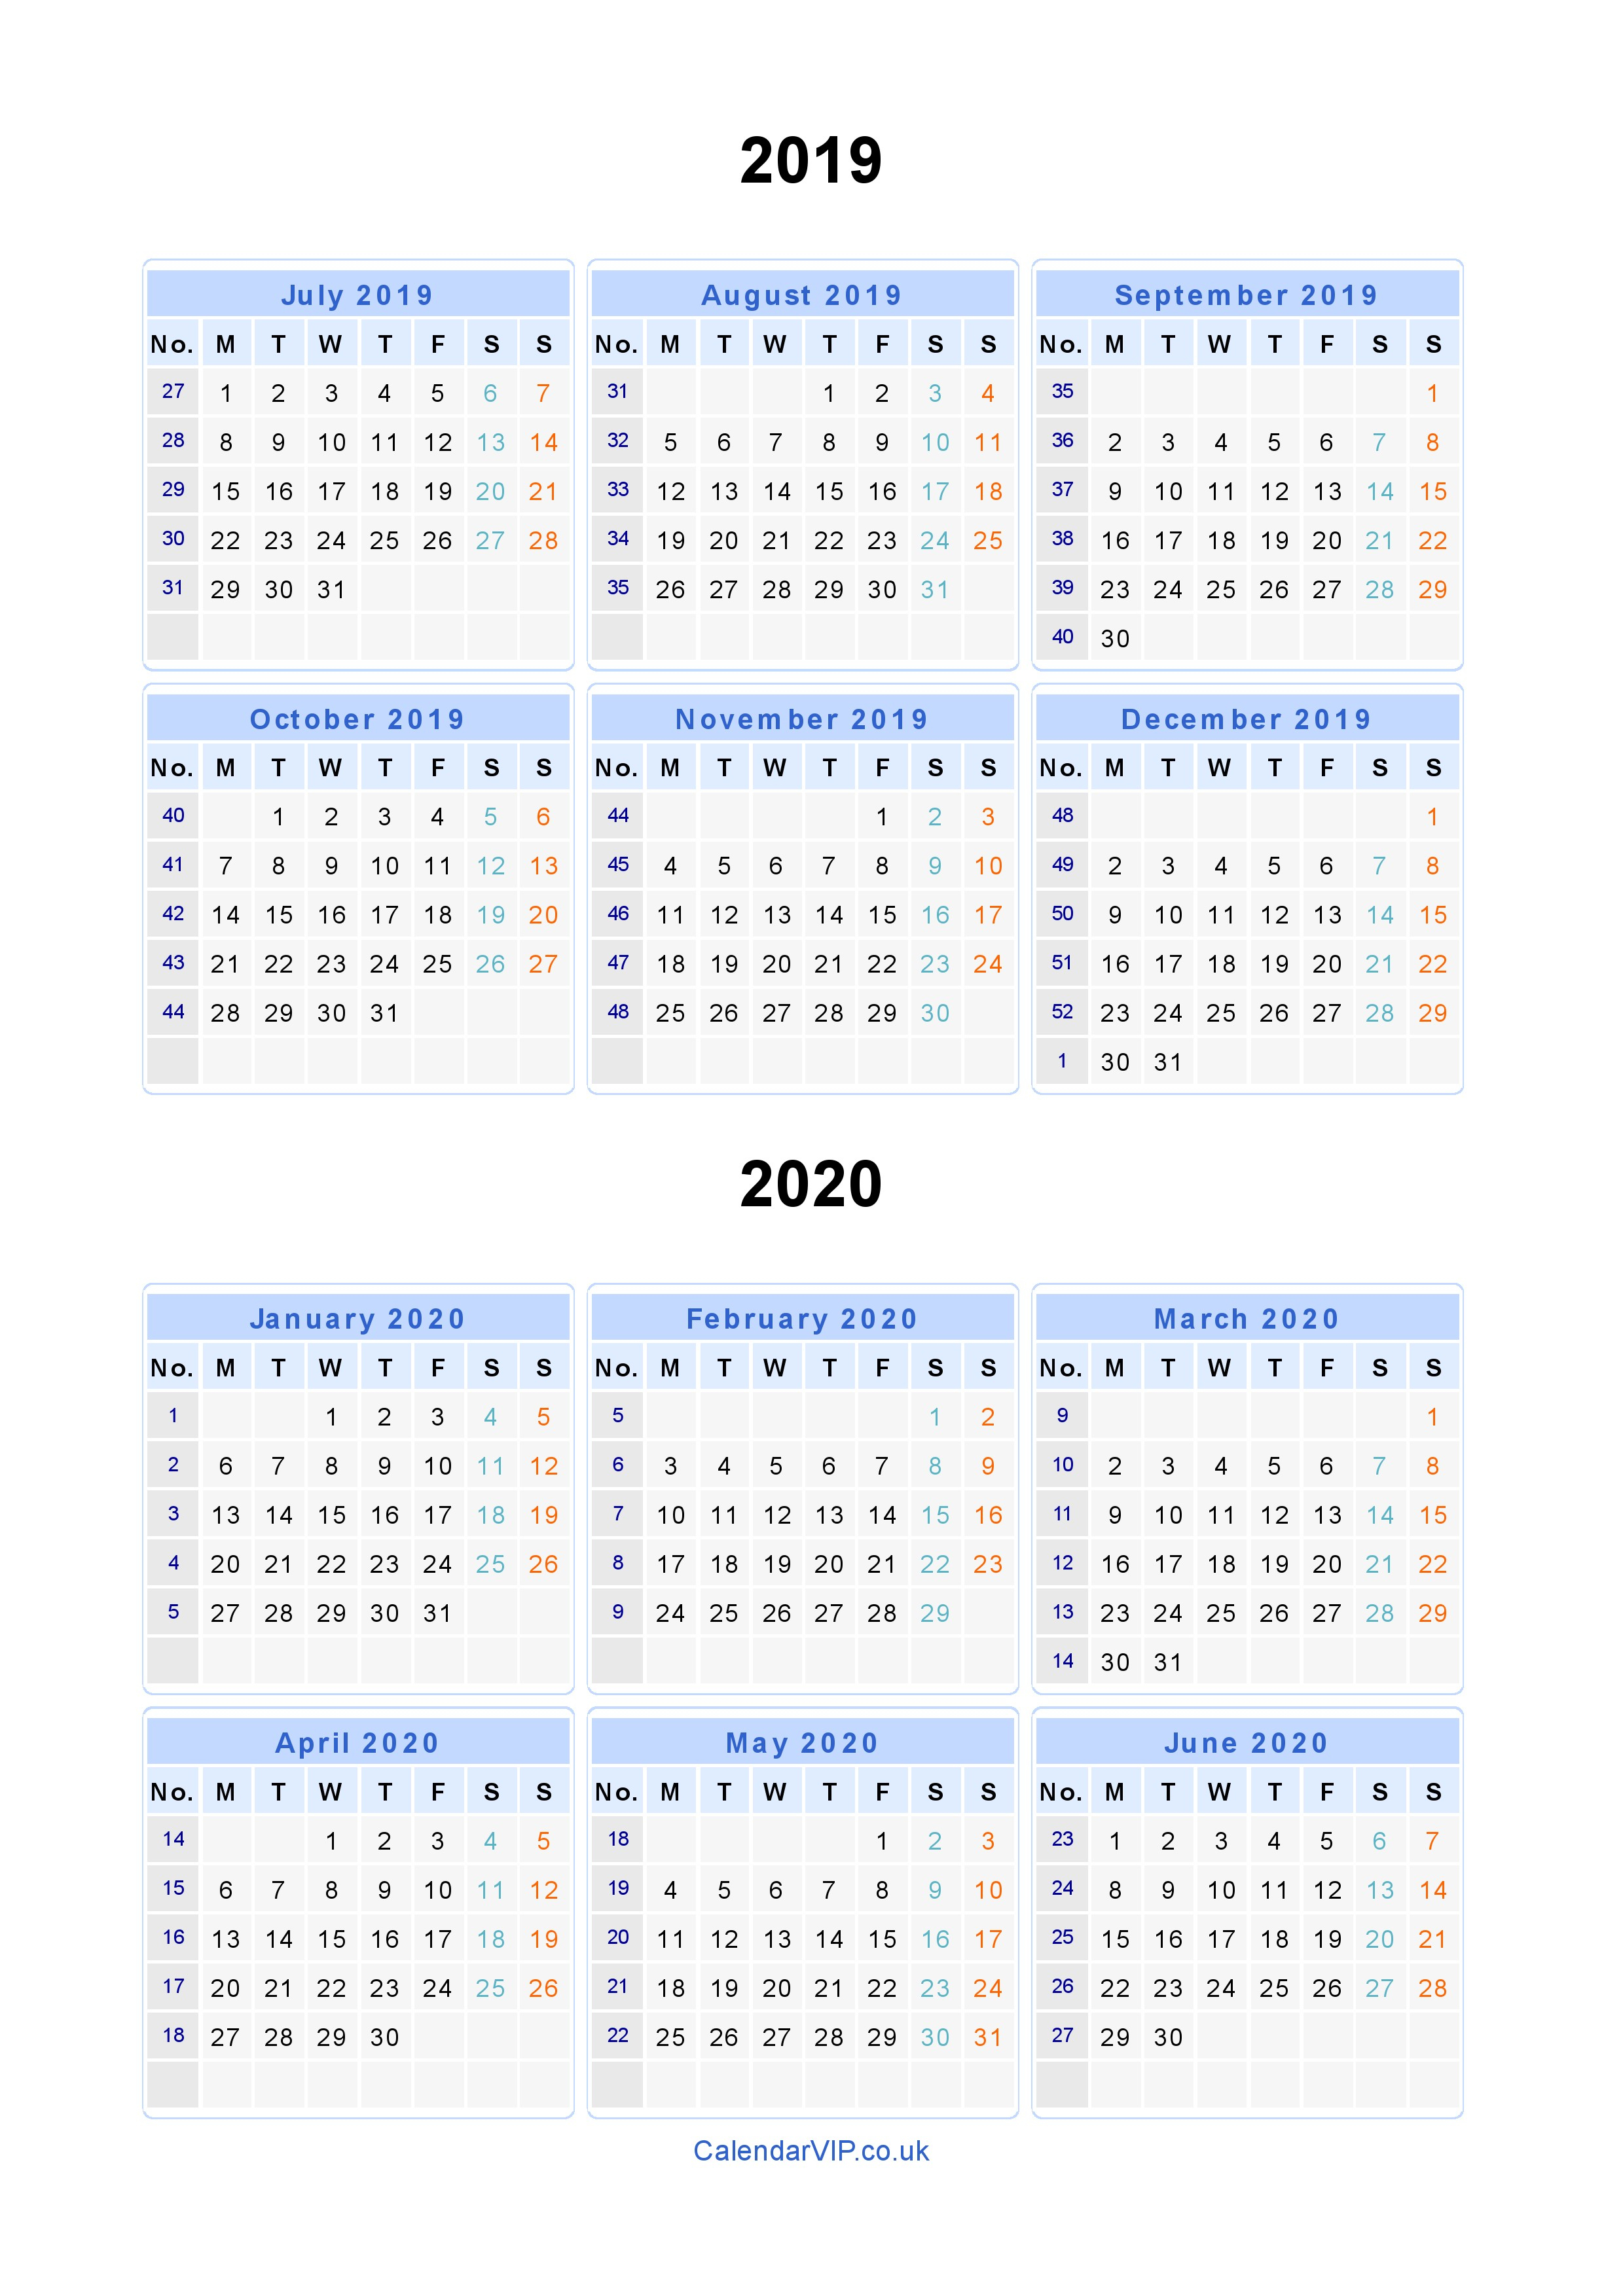 Split Year Calendars 2019 2020 - Calendar From July 2019 To June 2020 with Free Fillable Printable 2019 2020 Calendar